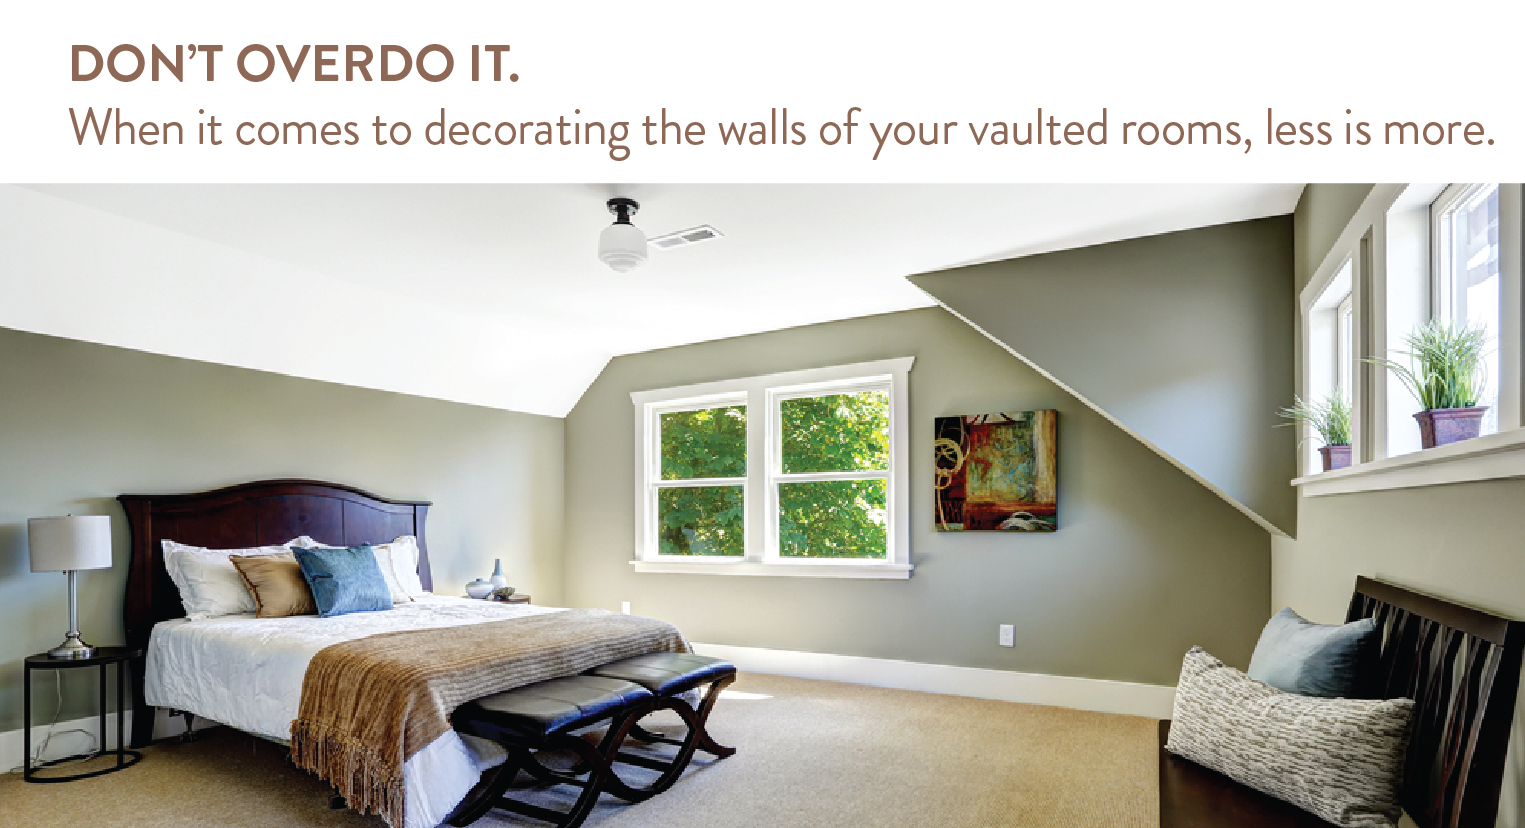 Adding A Wall To A Room 9 Design And Decor Ideas For Apartments With Vaulted Ceilings